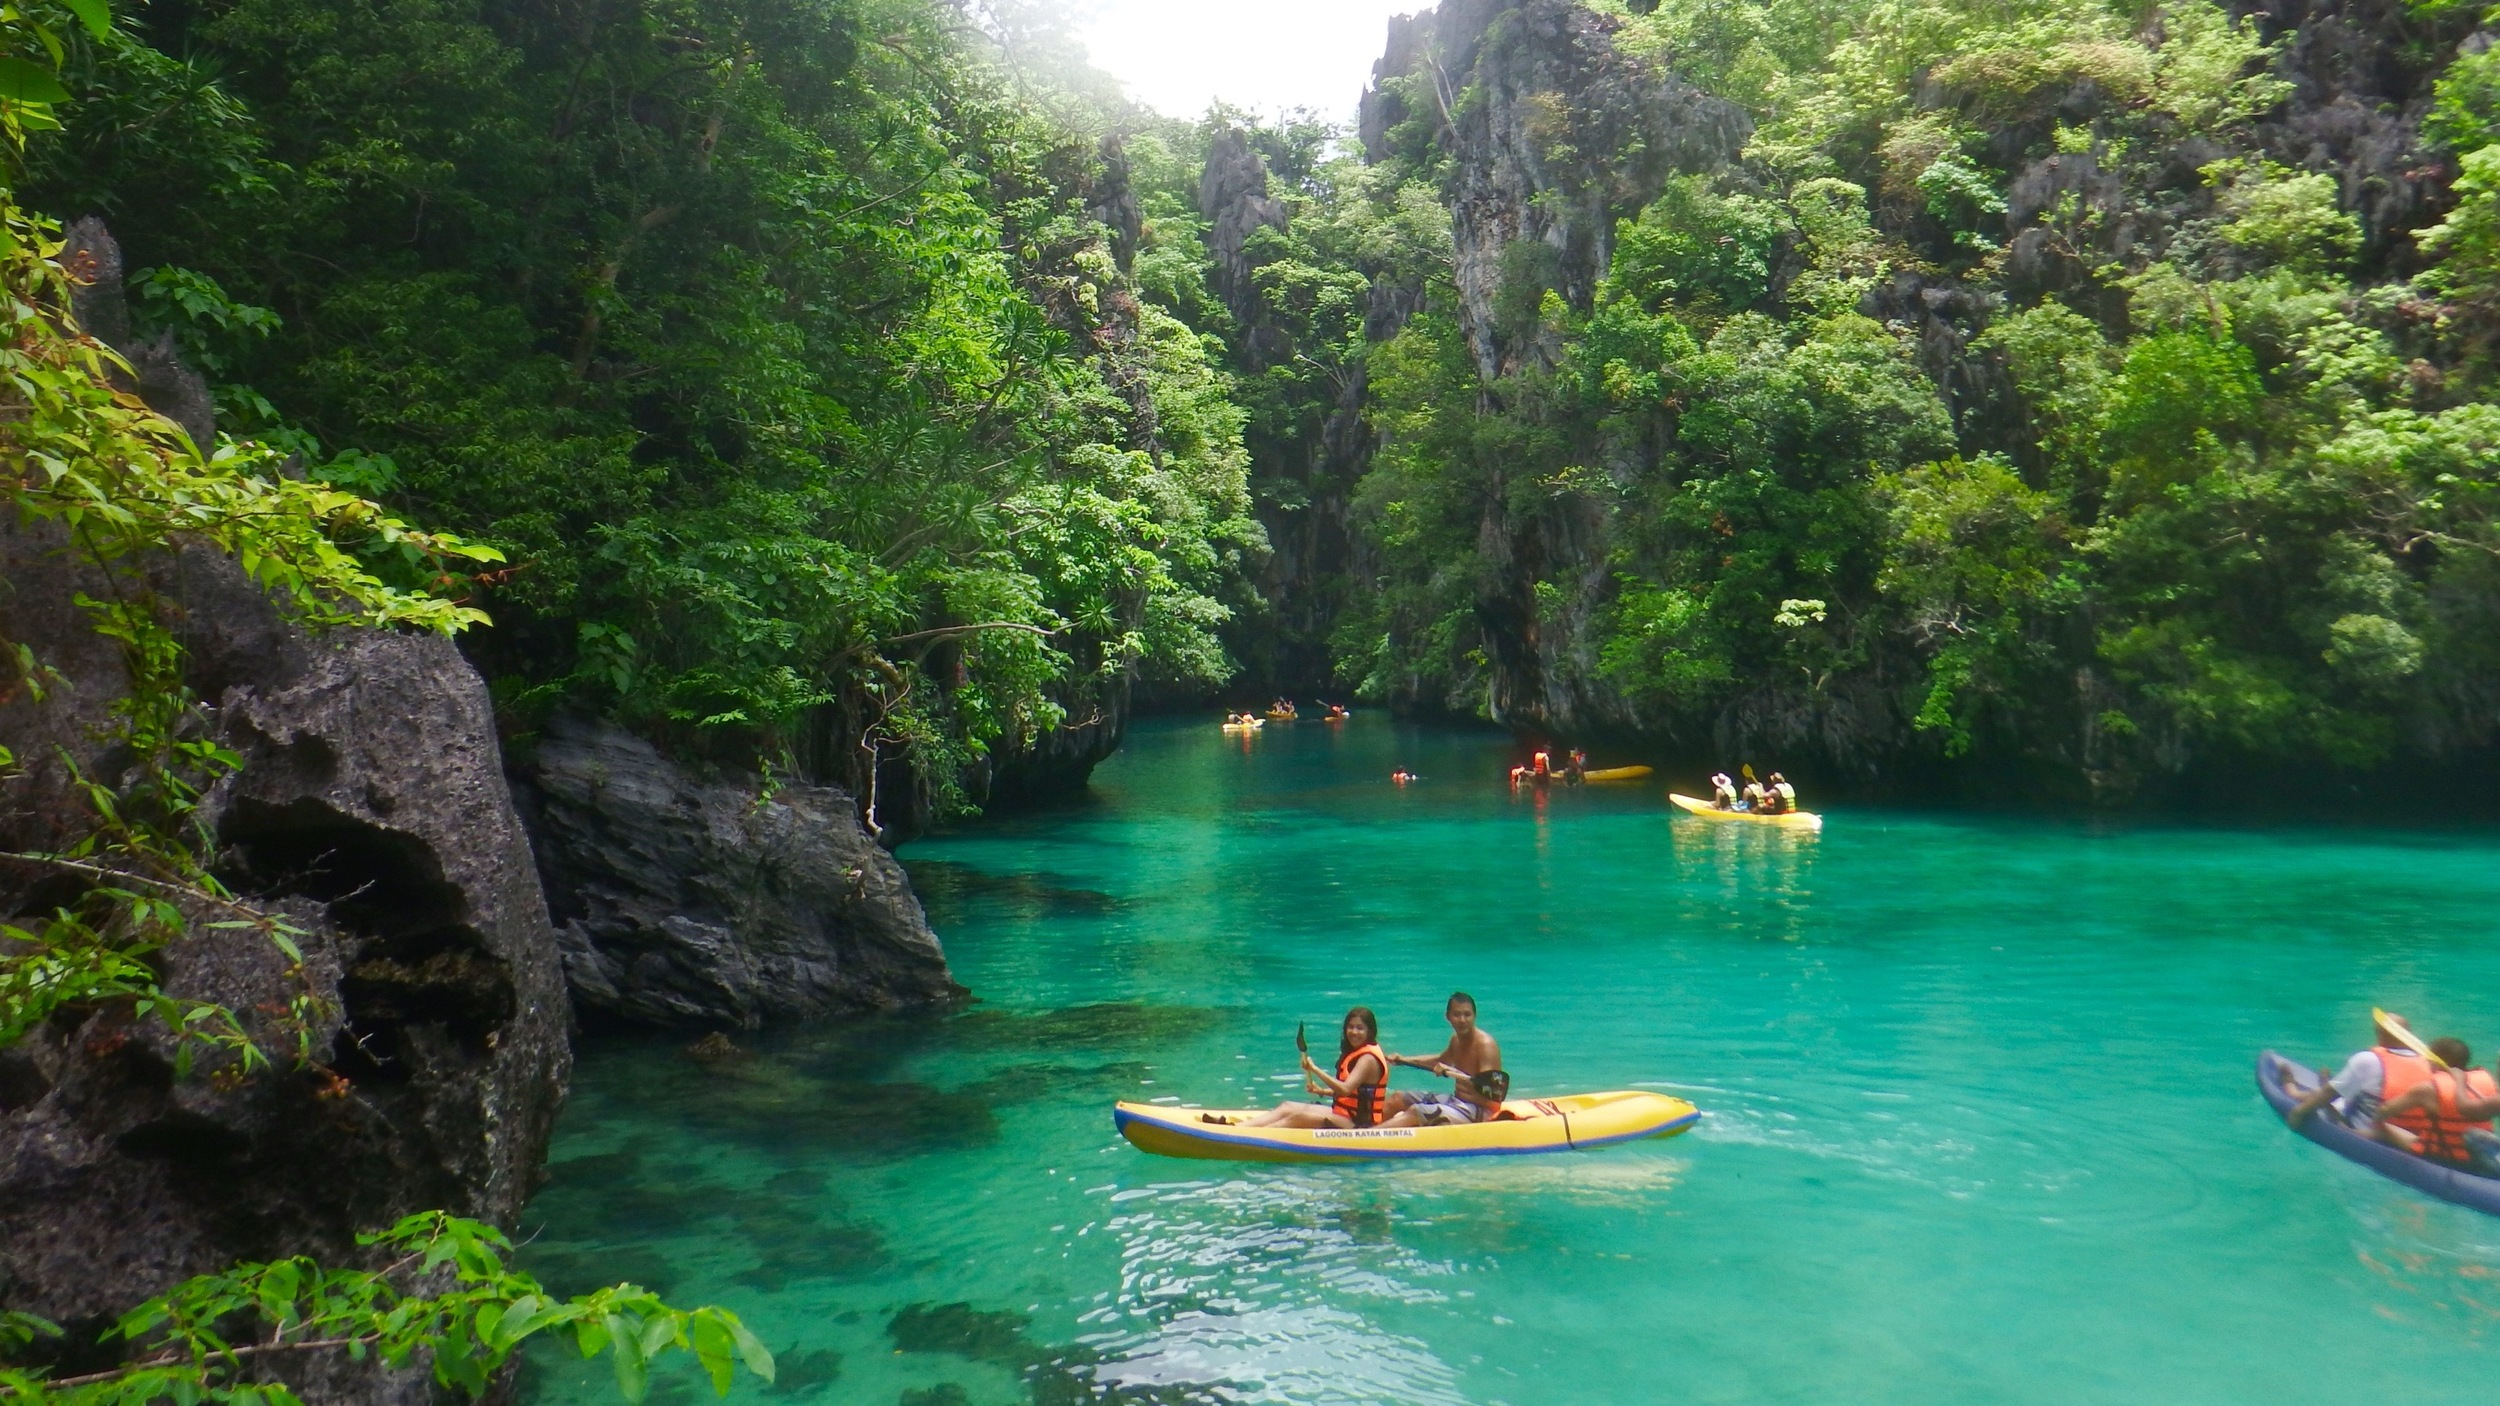 whensheroams_elnido_palawan_smalllagoon1.jpg